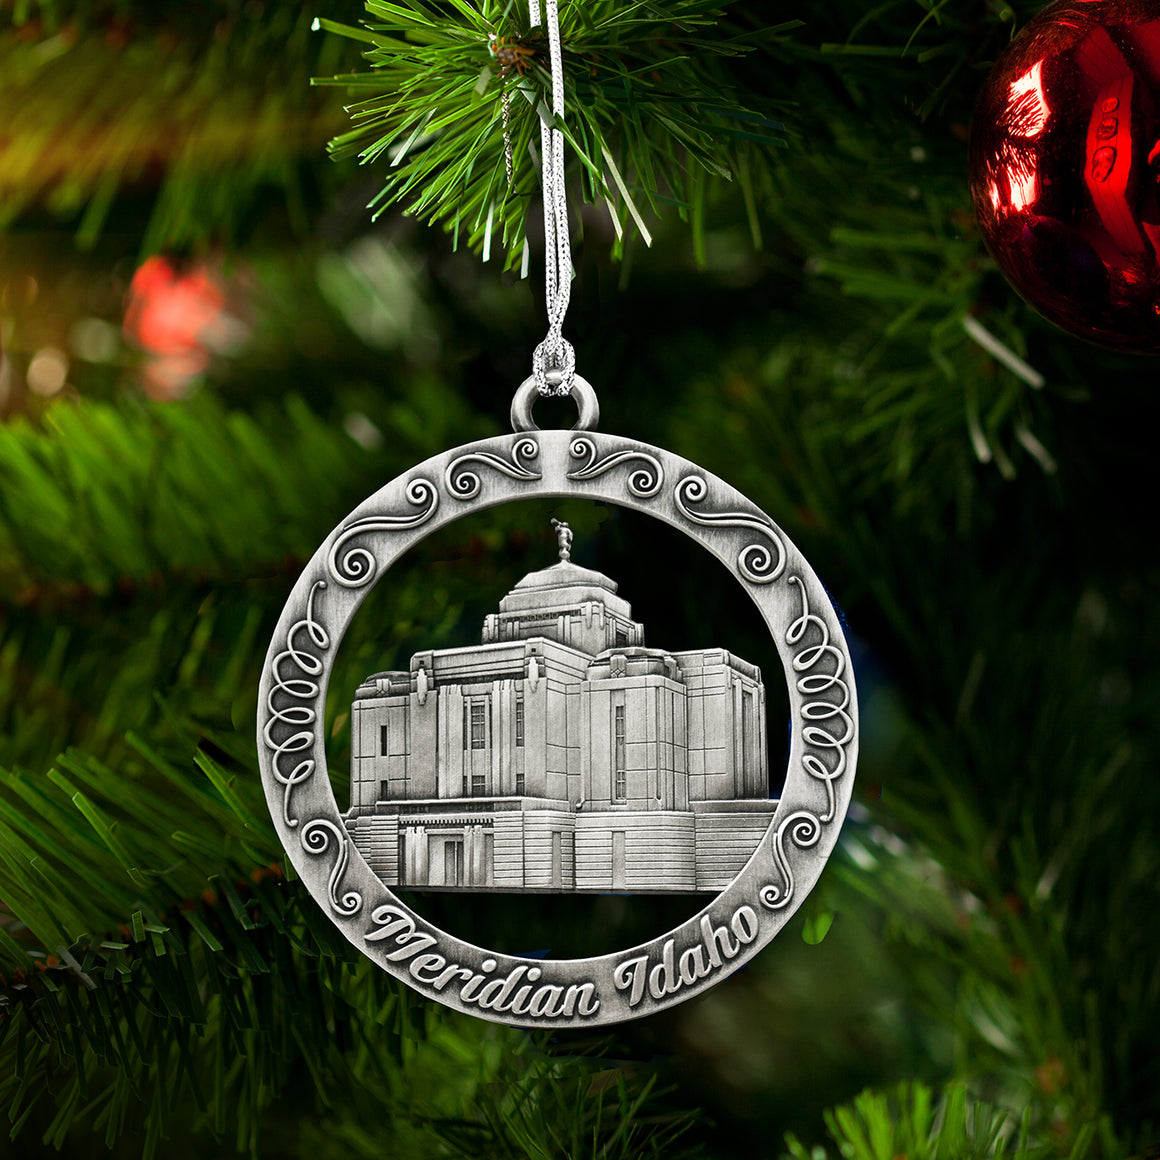 Meridian Idaho Temple Ornament